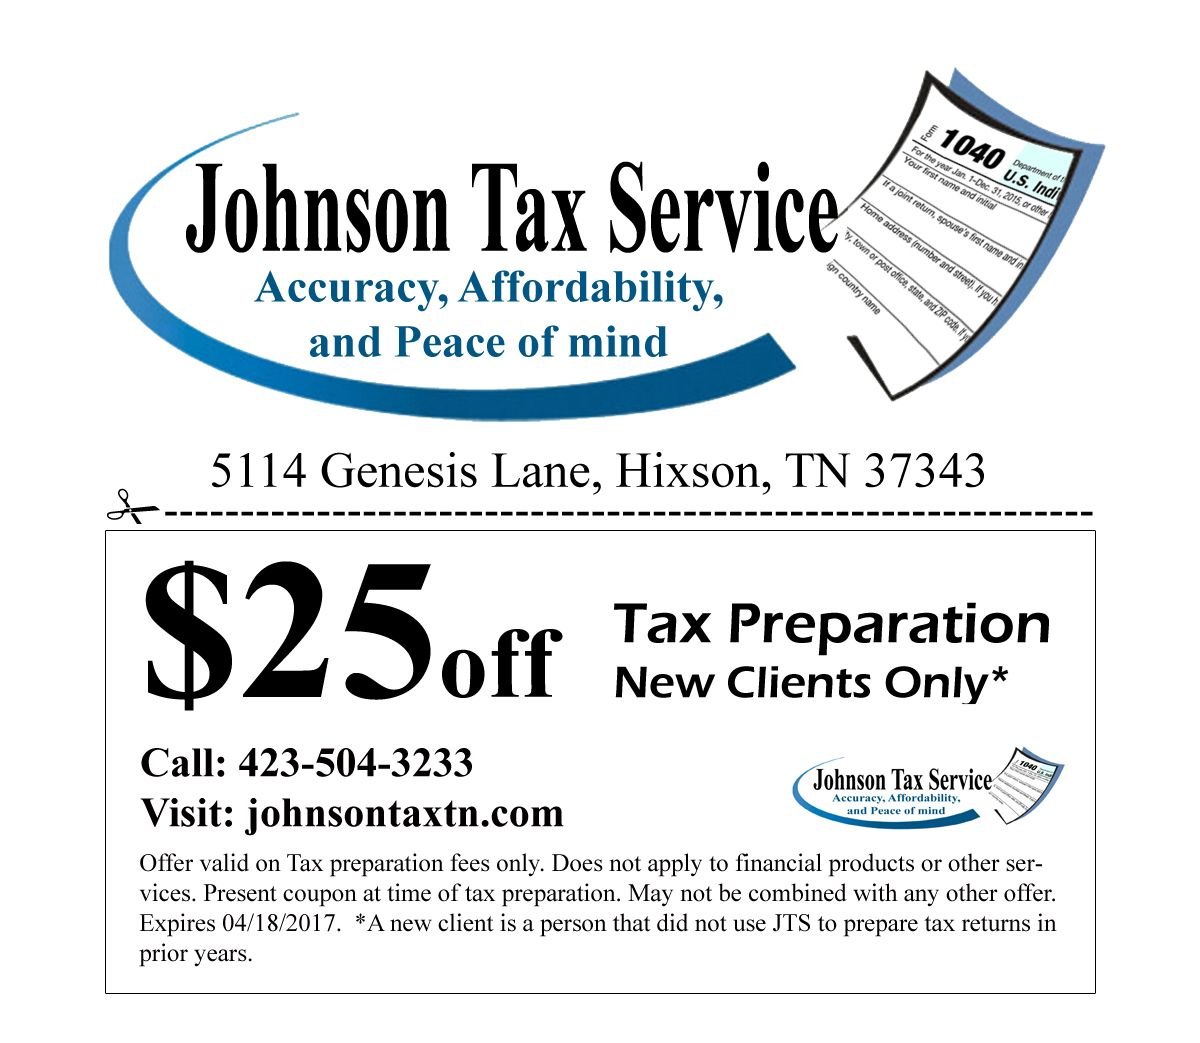 Pin by Johnson Tax Service on Tax Tax services